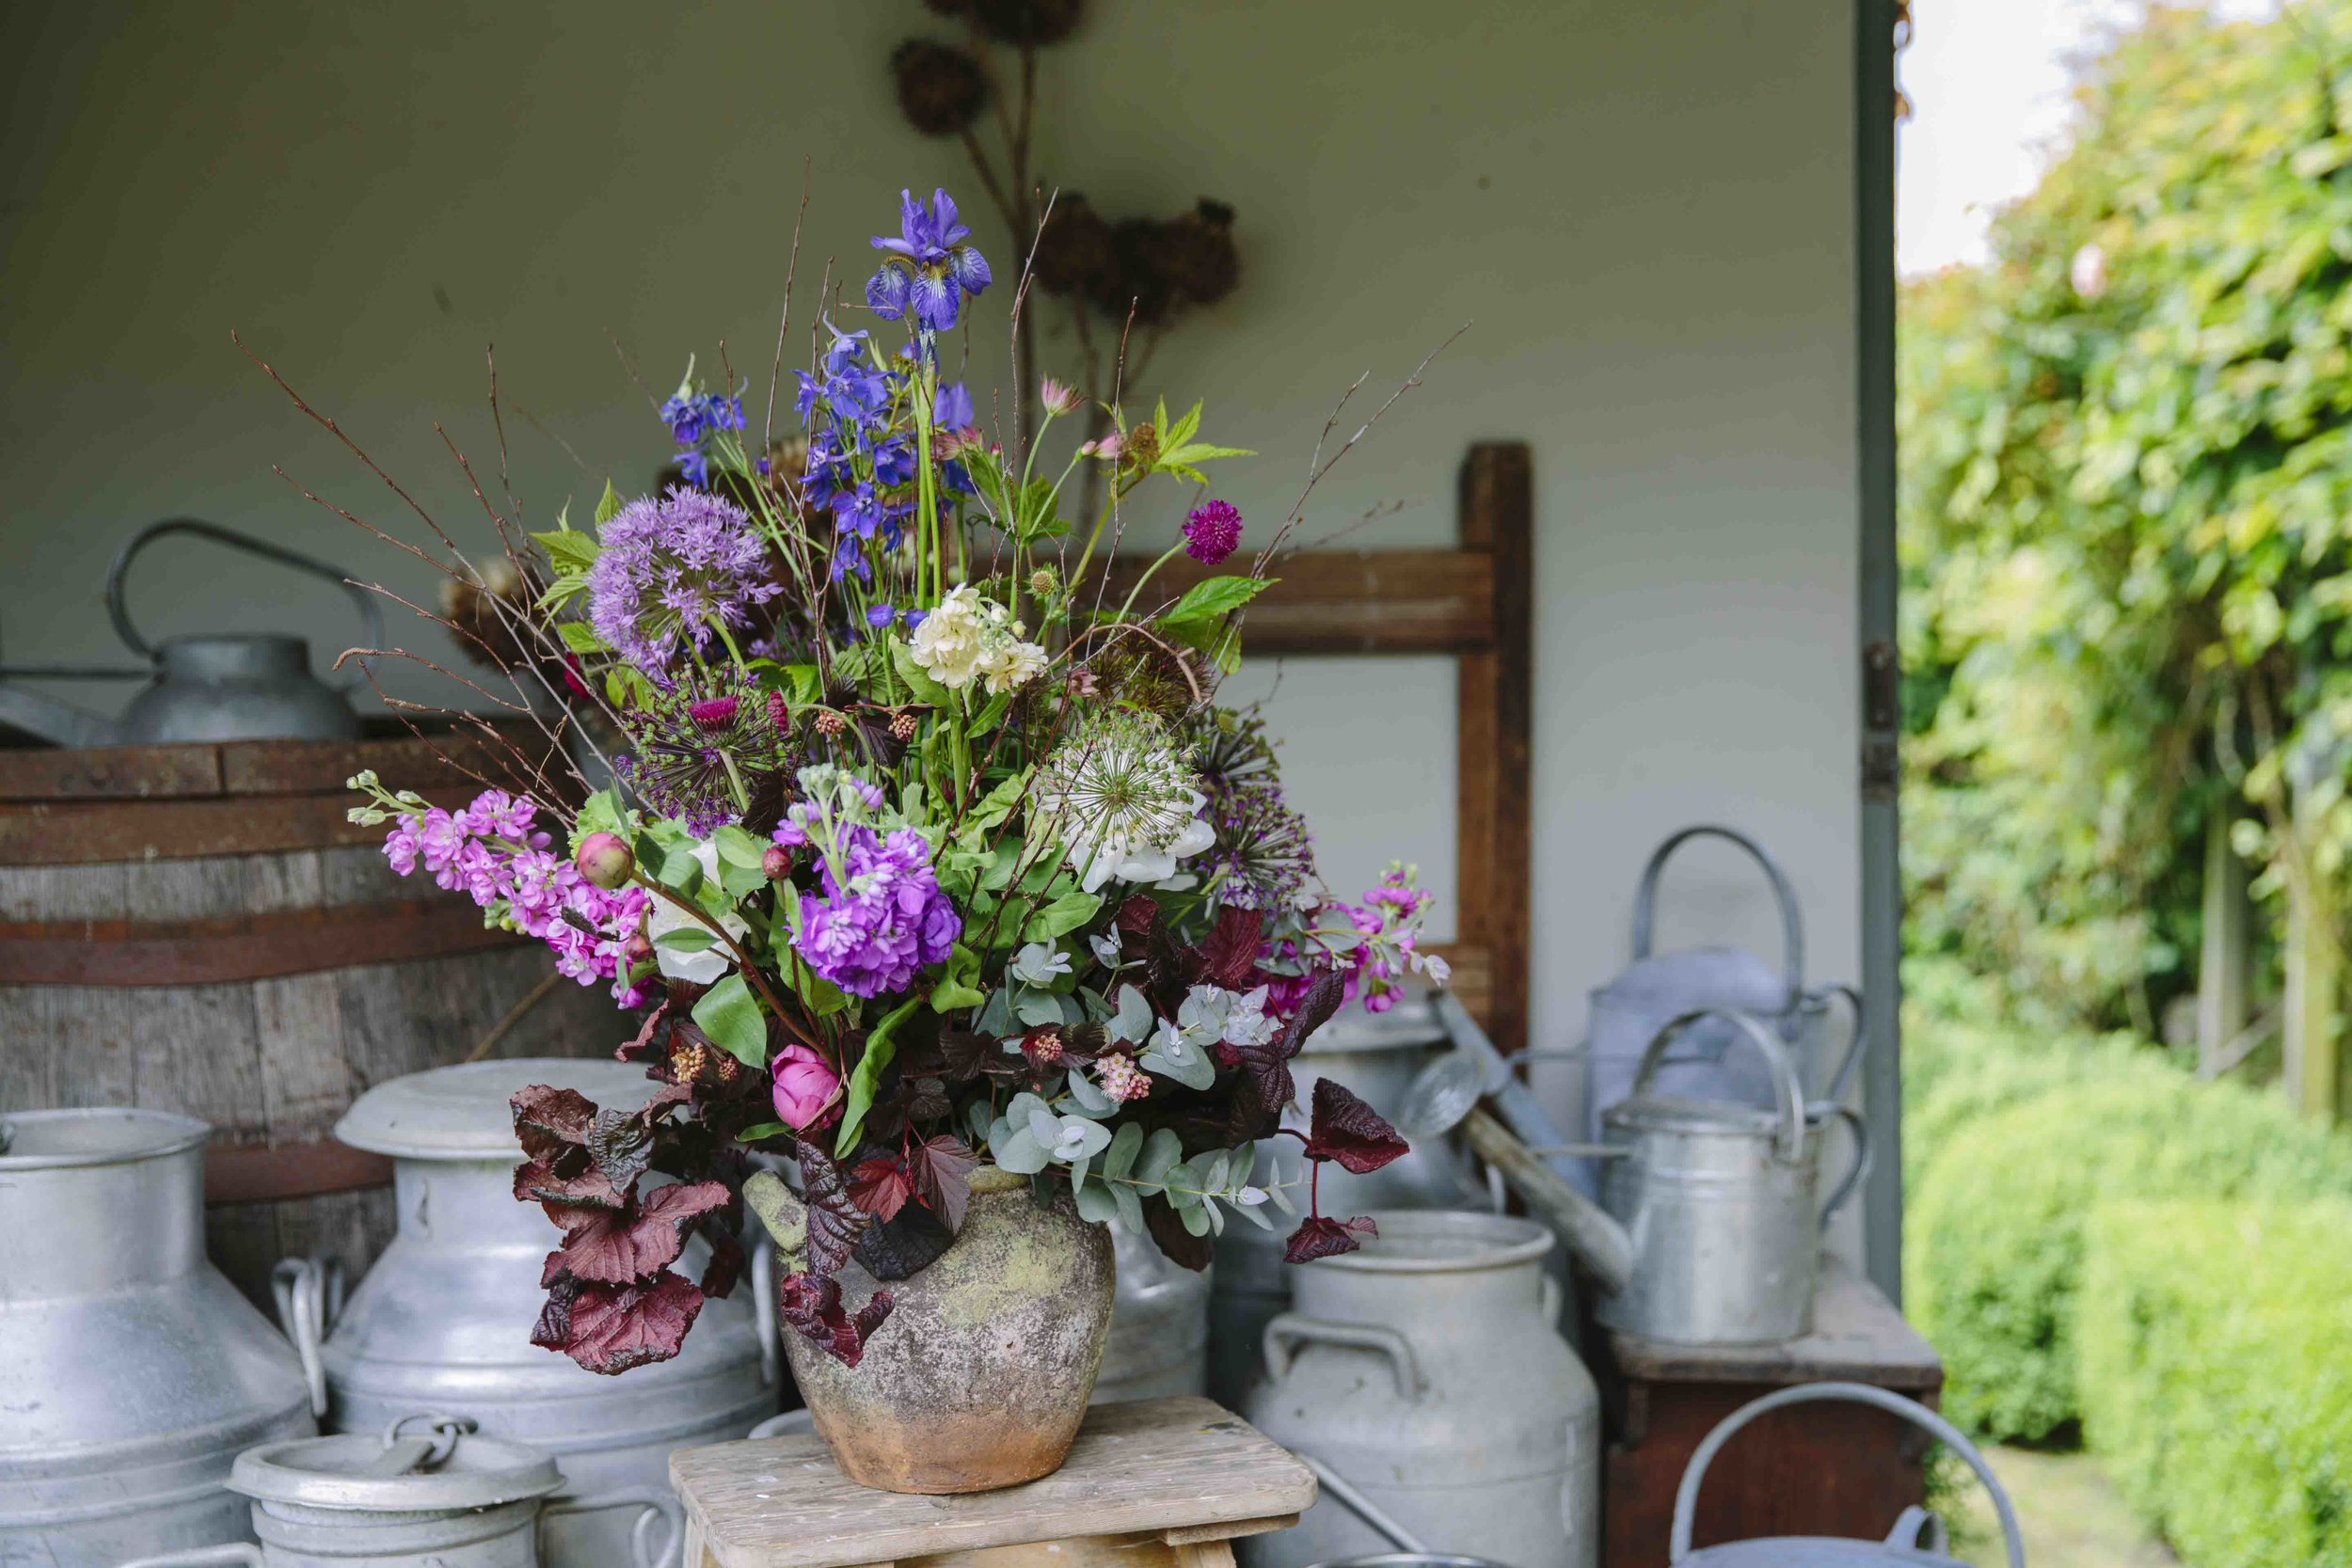 Yorkshire_Dales_Flower_Company_workshop_39.jpg